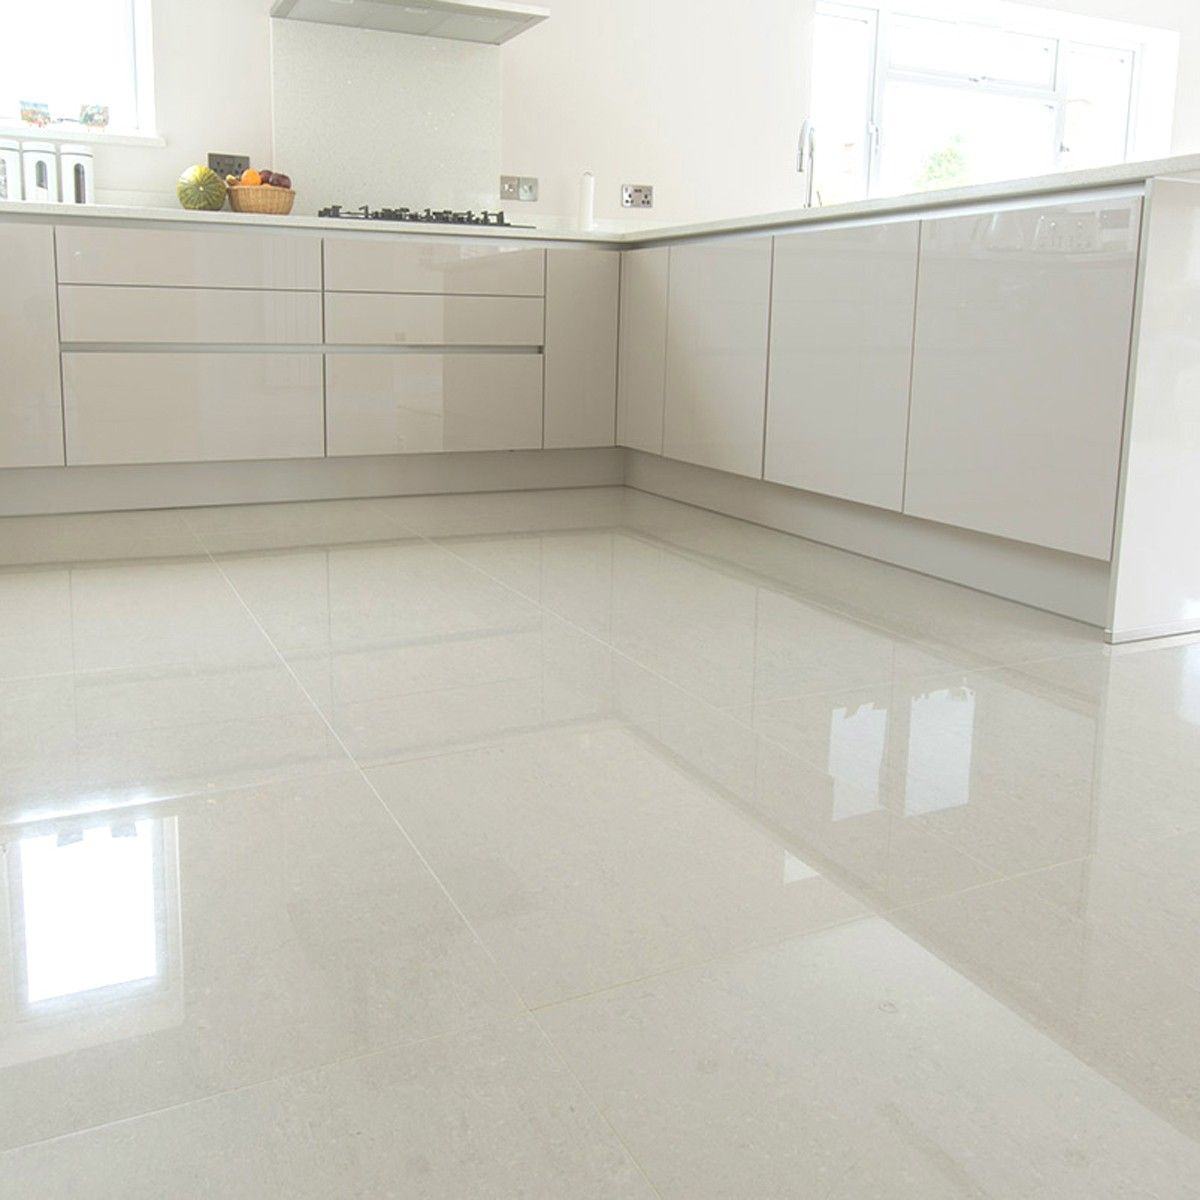 Crown tiles 60x60cm super polished ivory porcelain crown tiles super polished ivory porcelain floor tile is a very contemporary ivory tile does not require sealing dailygadgetfo Gallery